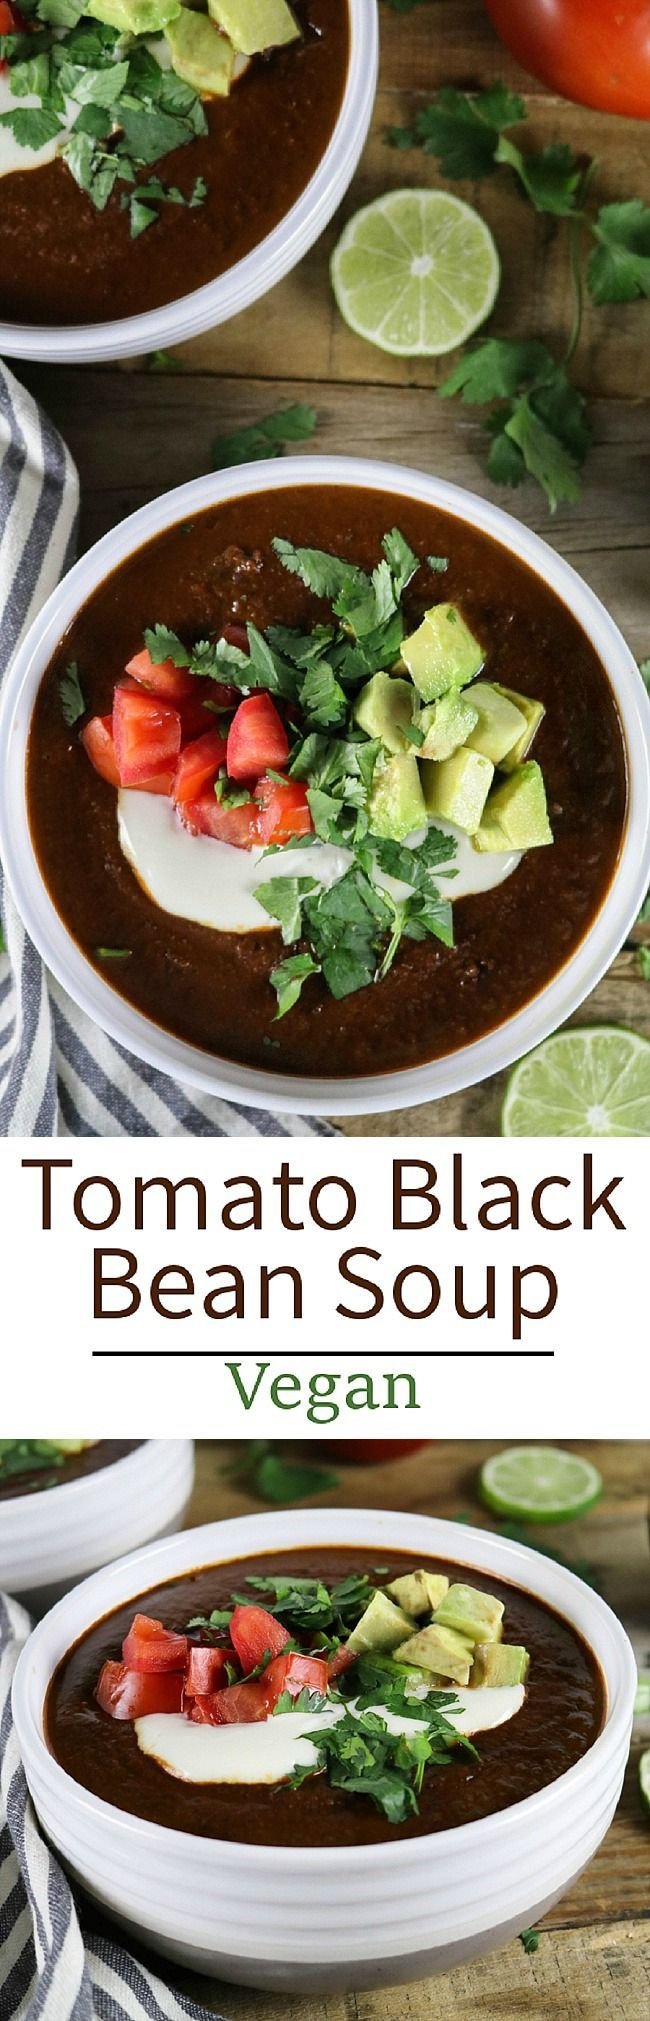 ... + images about soup on Pinterest | Noodle soups, Stew and Rice soup